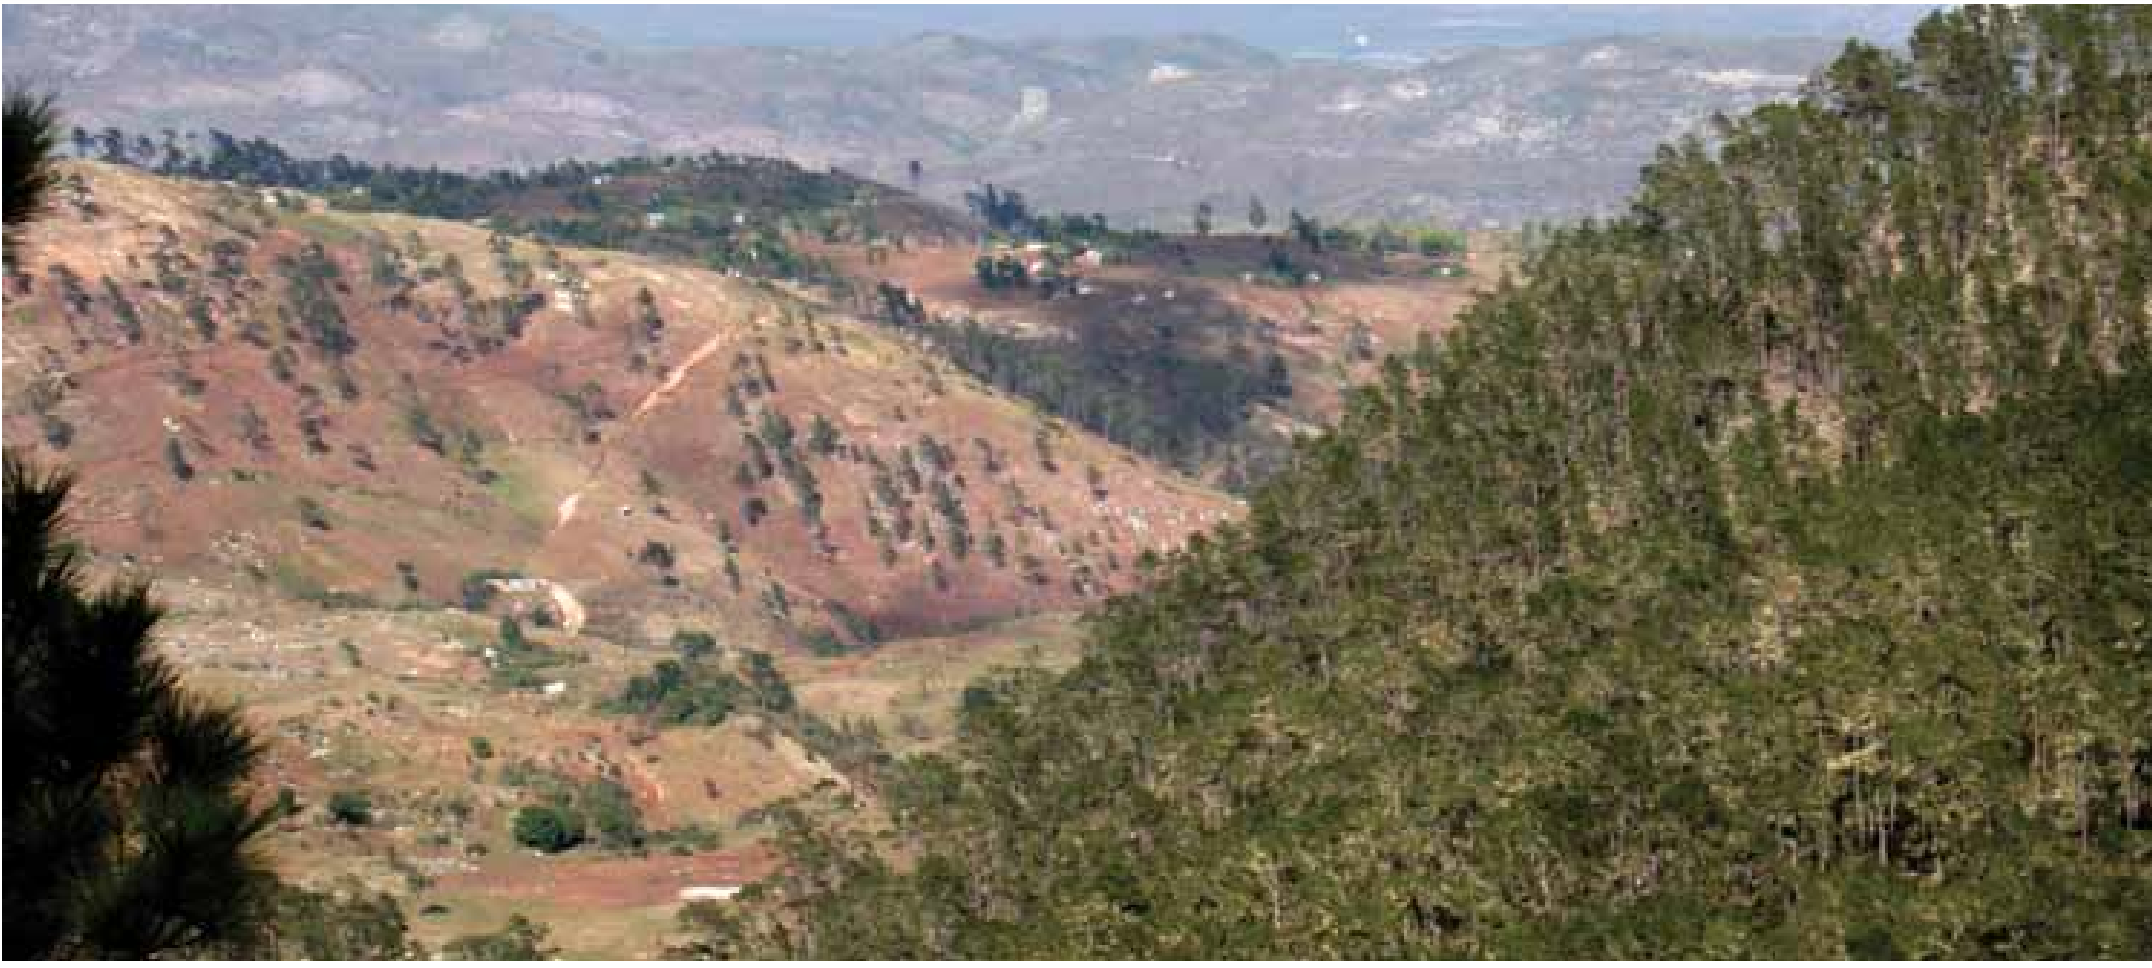 """Deforestation in Haiti at border with Dominican Republic """"width ="""" 2152 """"height ="""" 968 """"srcset ="""" https://cleantechnica.com/files/ 2019/07 / Screen-Shot-2019-07-29-at-4.47.58-PM.png 2152w, https://cleantechnica.com/files/2019/07/Screen-Shot-2019-07-29-at -4.47.58-PM-270x121.png 270w, https://cleantechnica.com/files/2019/07/Screen-Shot-2019-07-29-at-4.47.58-PM-768x345.png 768w, https : //cleantechnica.com/files/2019/07/Screen-Shot-2019-07-29-at-4.47.58-PM-570x256.png 570w """"sizes ="""" (max-width: 2152px) 100vw, 2152px [19659030] Image from US Fish and Wildlife Service report</p></div><p> What's this a picture of? Well, take a picture of the border of Haiti and the Dominican Republic in the Caribbean. The site without any trees is Haiti. The Dominican Republic has the 66th largest GDP in the world. Haiti has the 139th largest. Haiti is dirt poor due to a long series of incredibly poor luck between corruption, horrible leaders, and natural disasters. And there are 60 countries poorer than Haiti.</p><p> If, as one example, the richest country in the world and the one responsible for vastly more greenhouse gas emissions since the Industrial Revolution than any other country, and in fact all 28 countries of the EU were signatory to the Paris Accord, then funding would be available to poor countries to help reforest them.</p><div id="""